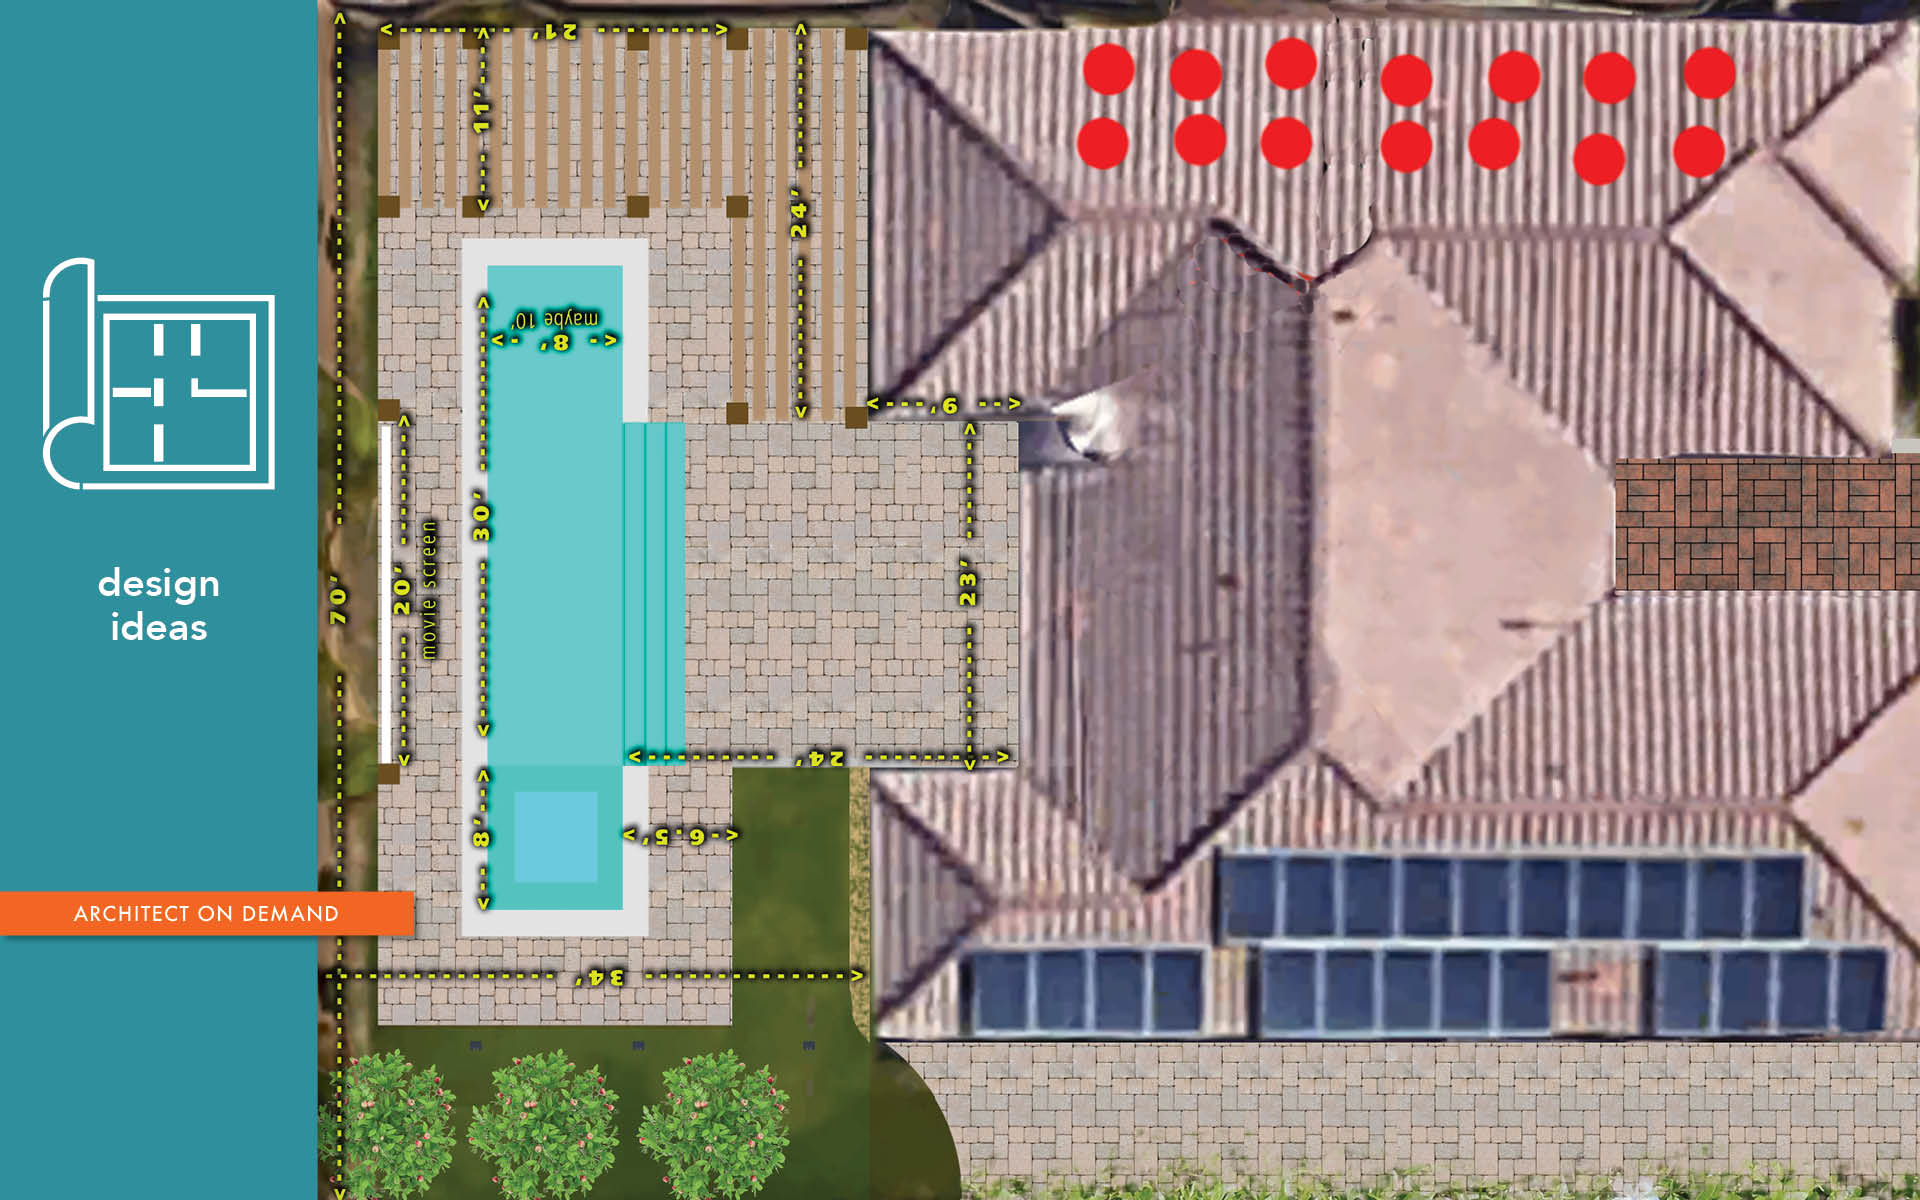 site plan, backyard, pool, hot tup, pergola, architect on demand, advice without strings